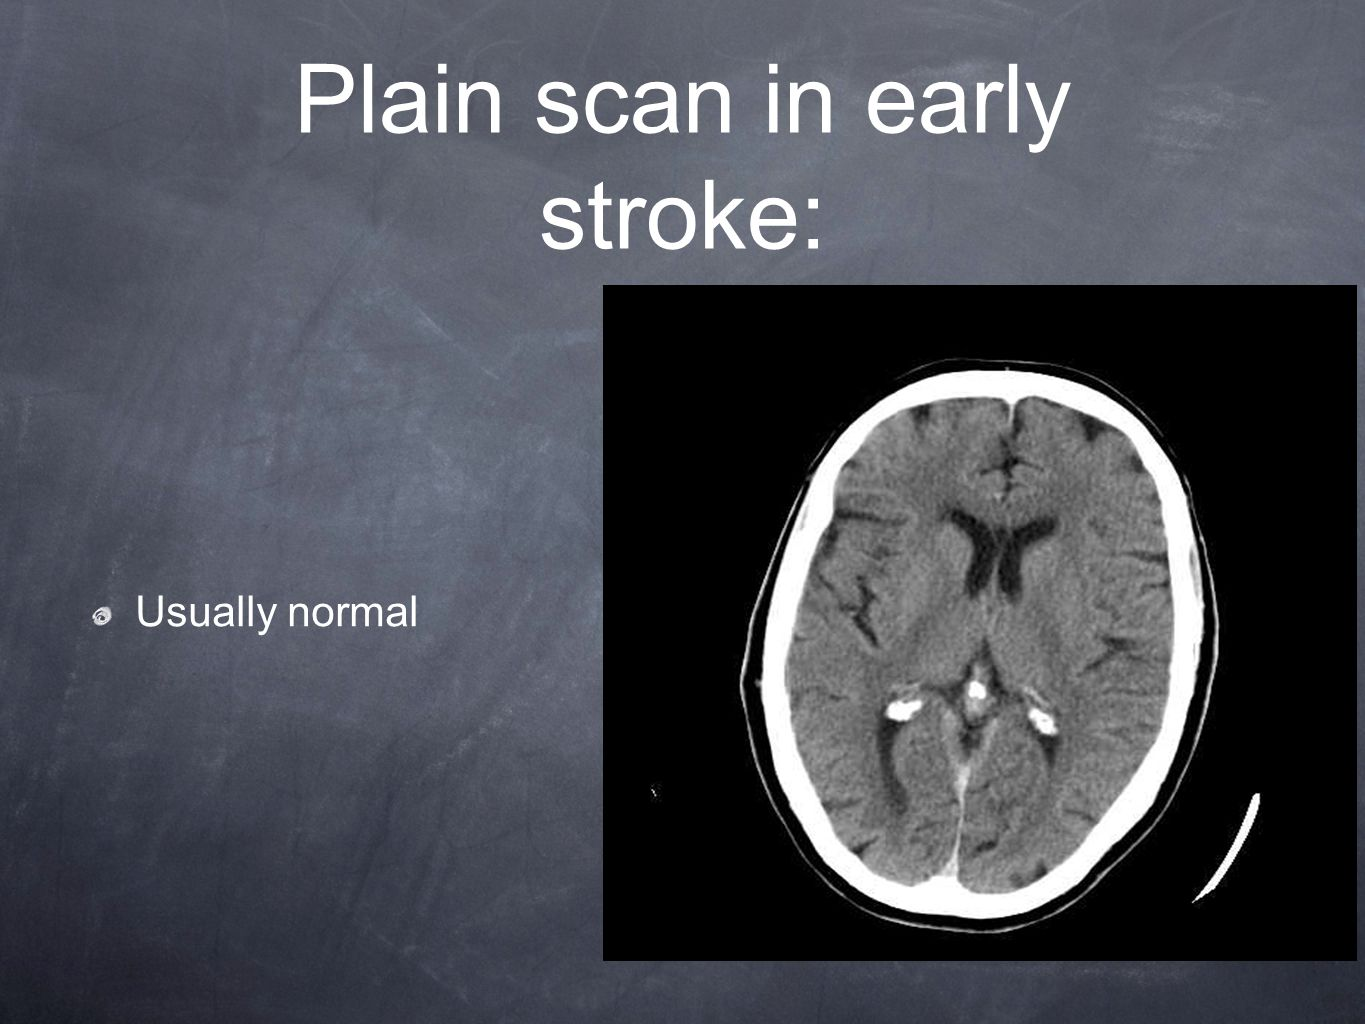 Plain scan in early stroke: Usually normal